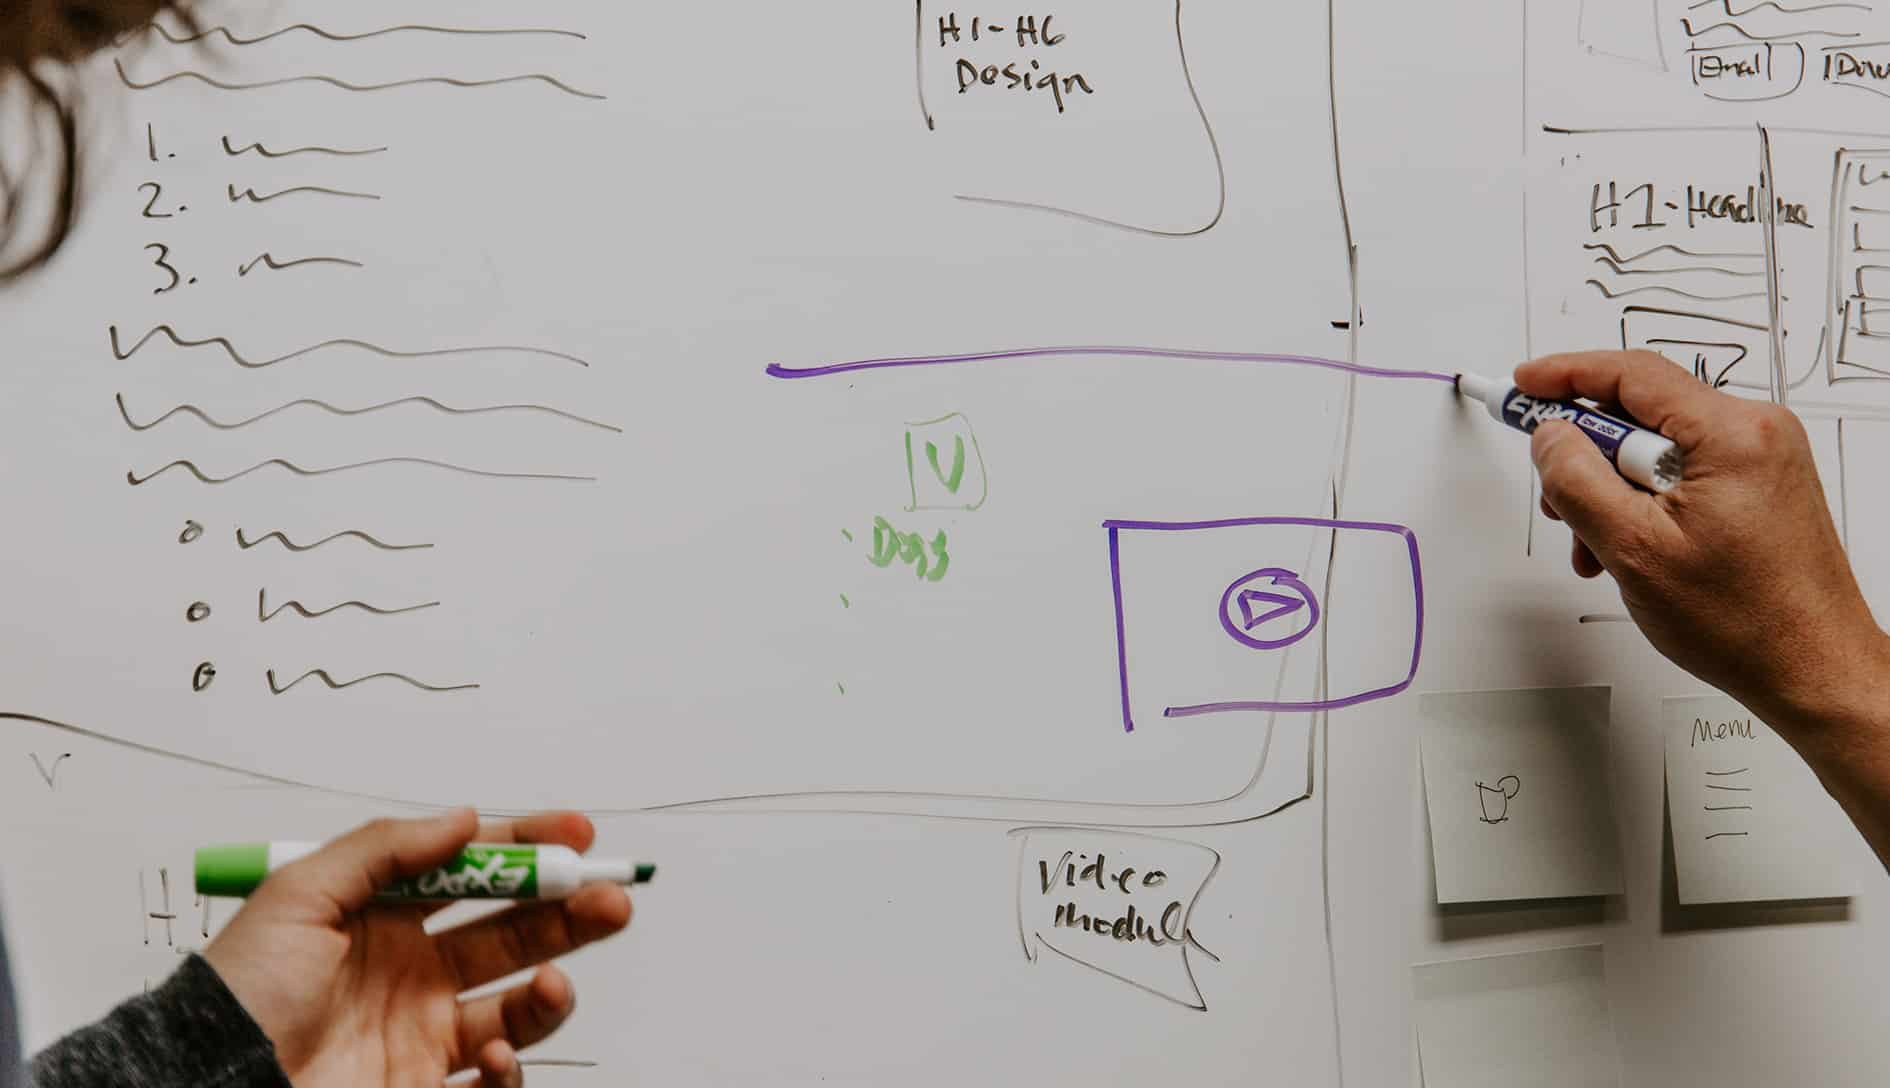 sketches on whiteboard for website design and structure